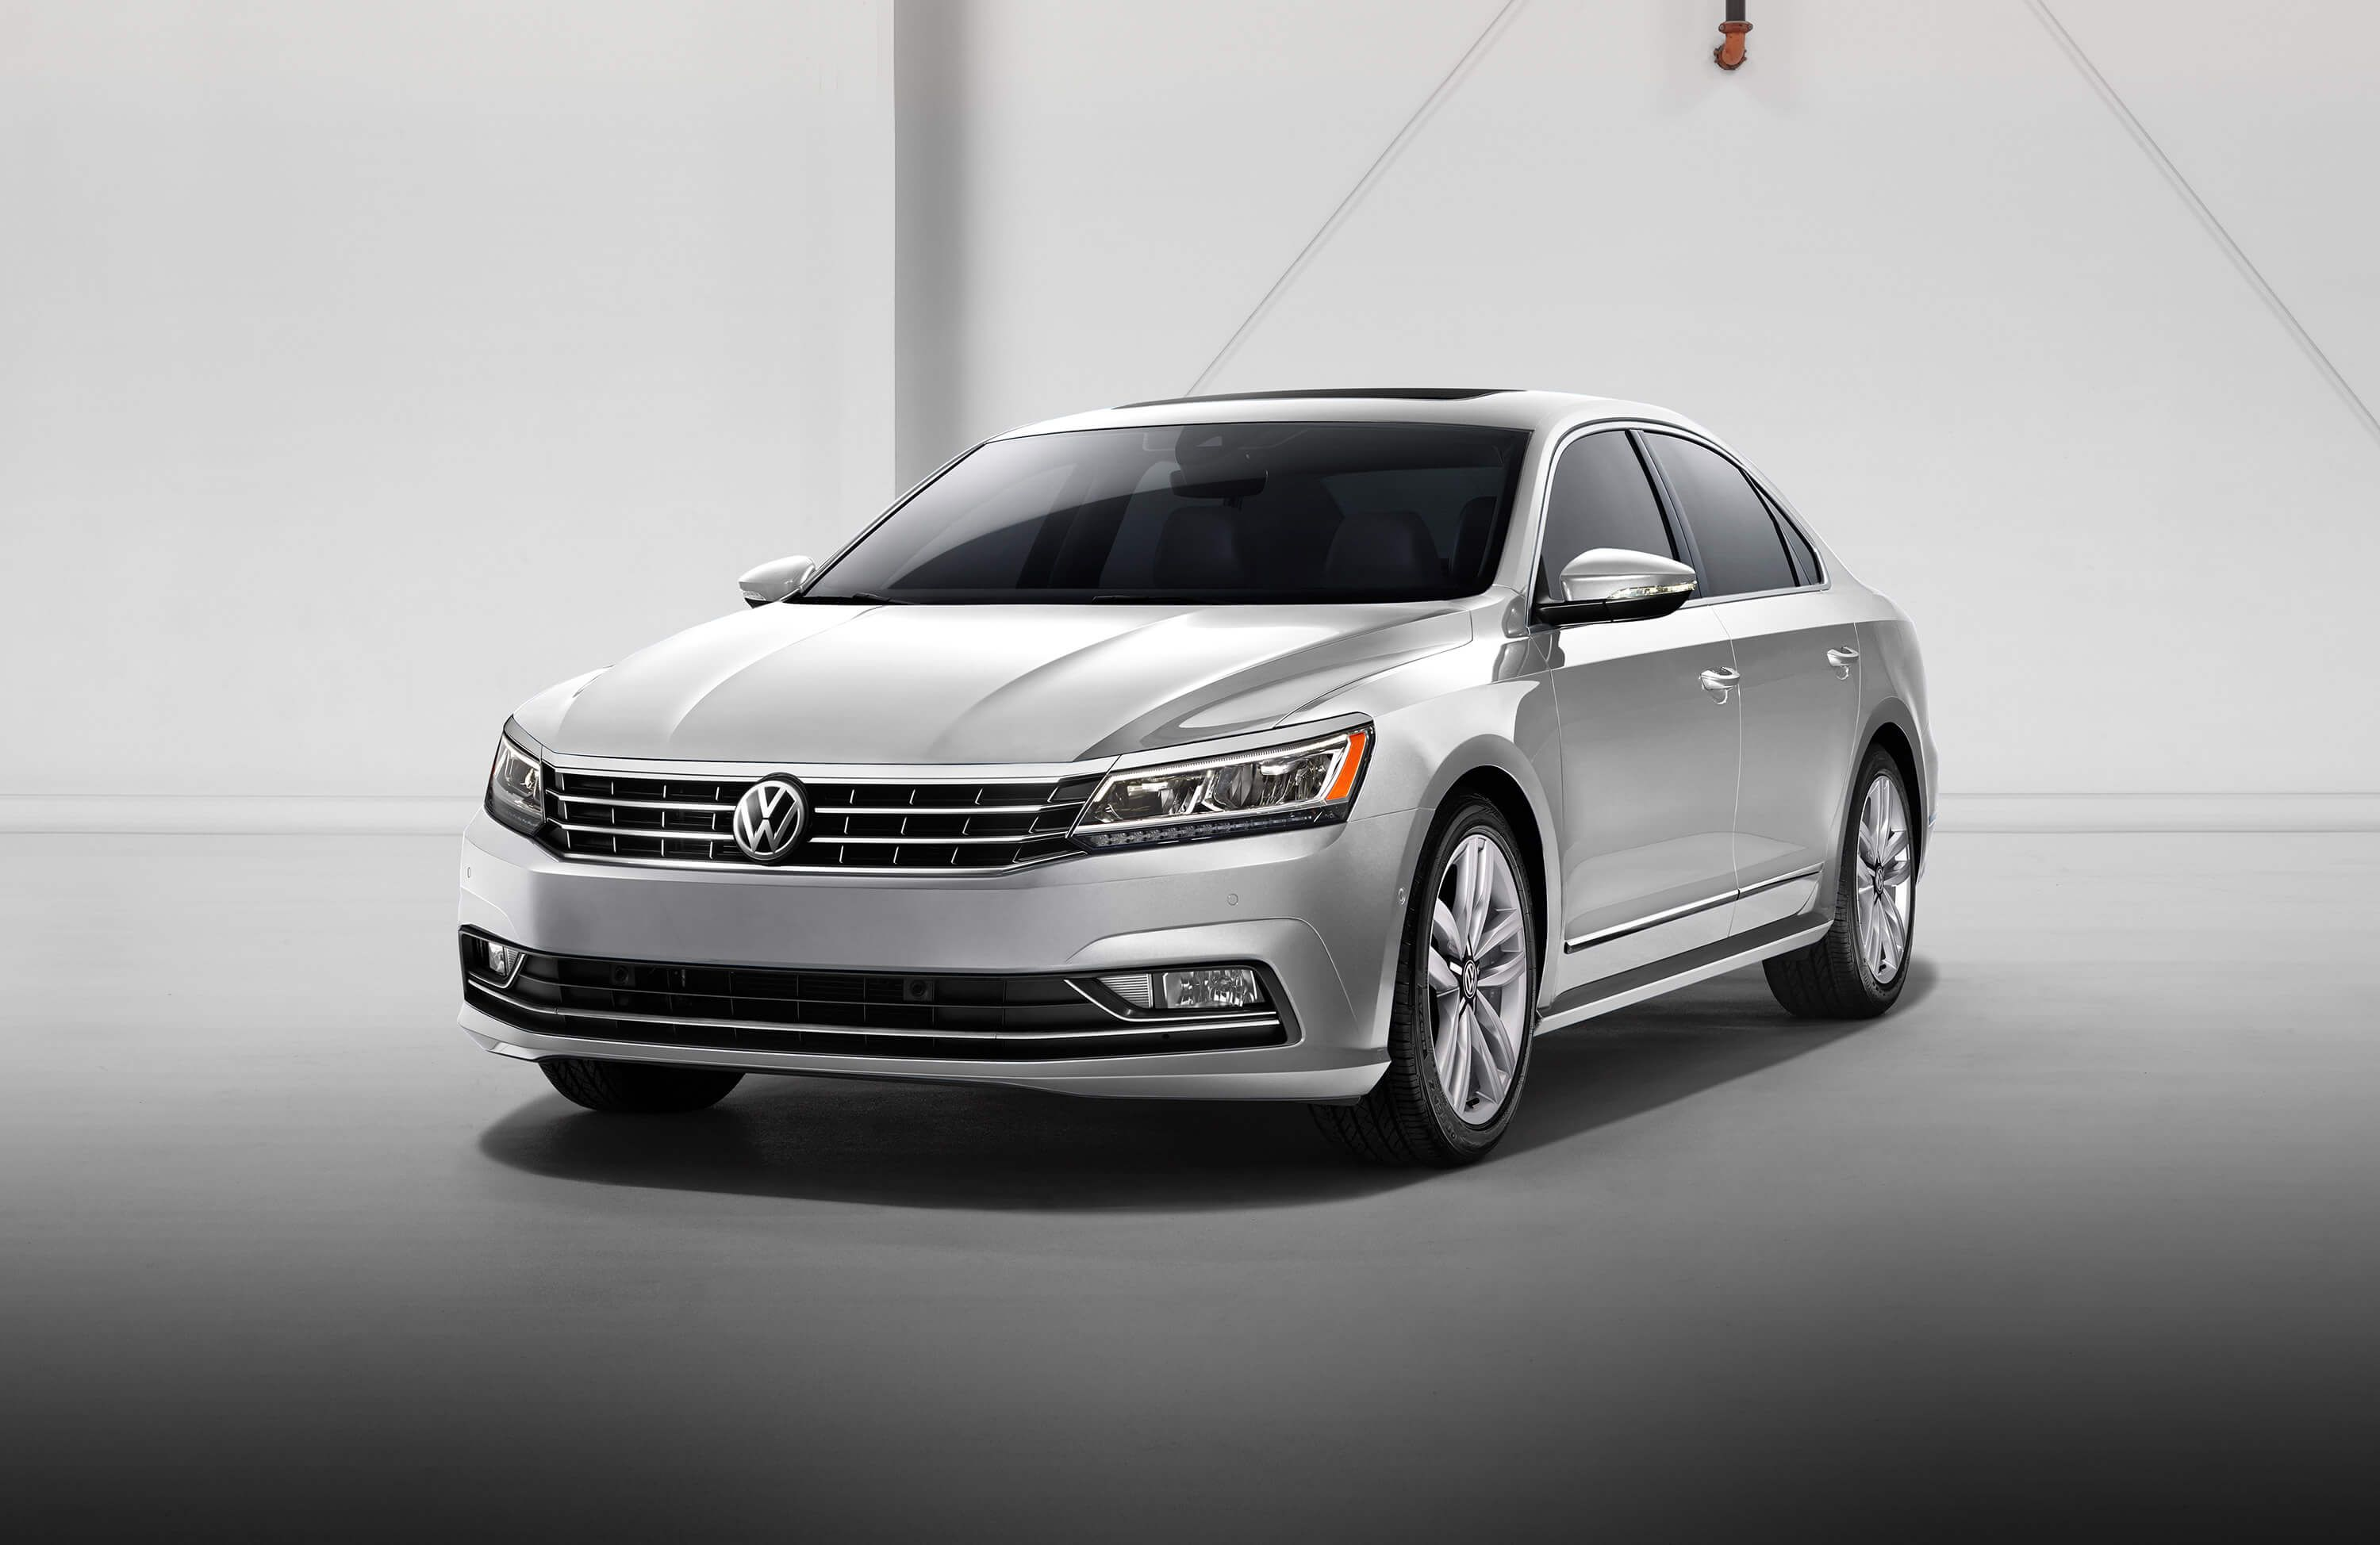 introducing the newly redesigned volkswagen passat with a redesigned rh pinterest com